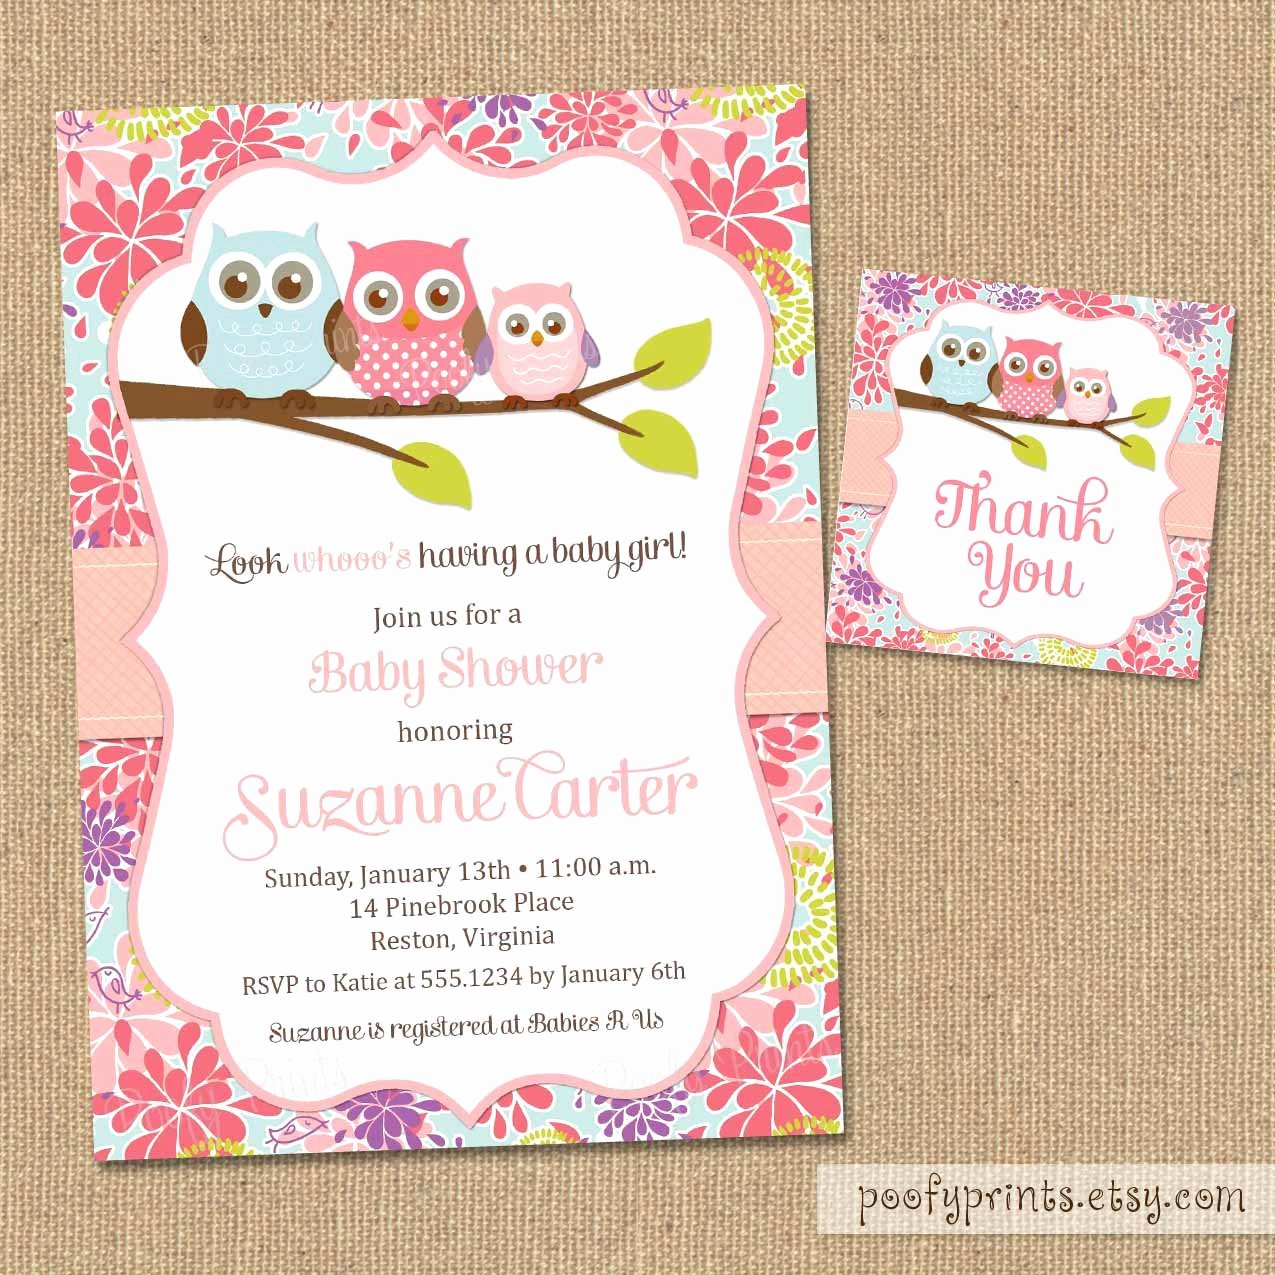 Free Owl Invitation Template Lovely Owl Baby Shower Invitations Diy Printable Baby by Poofyprints